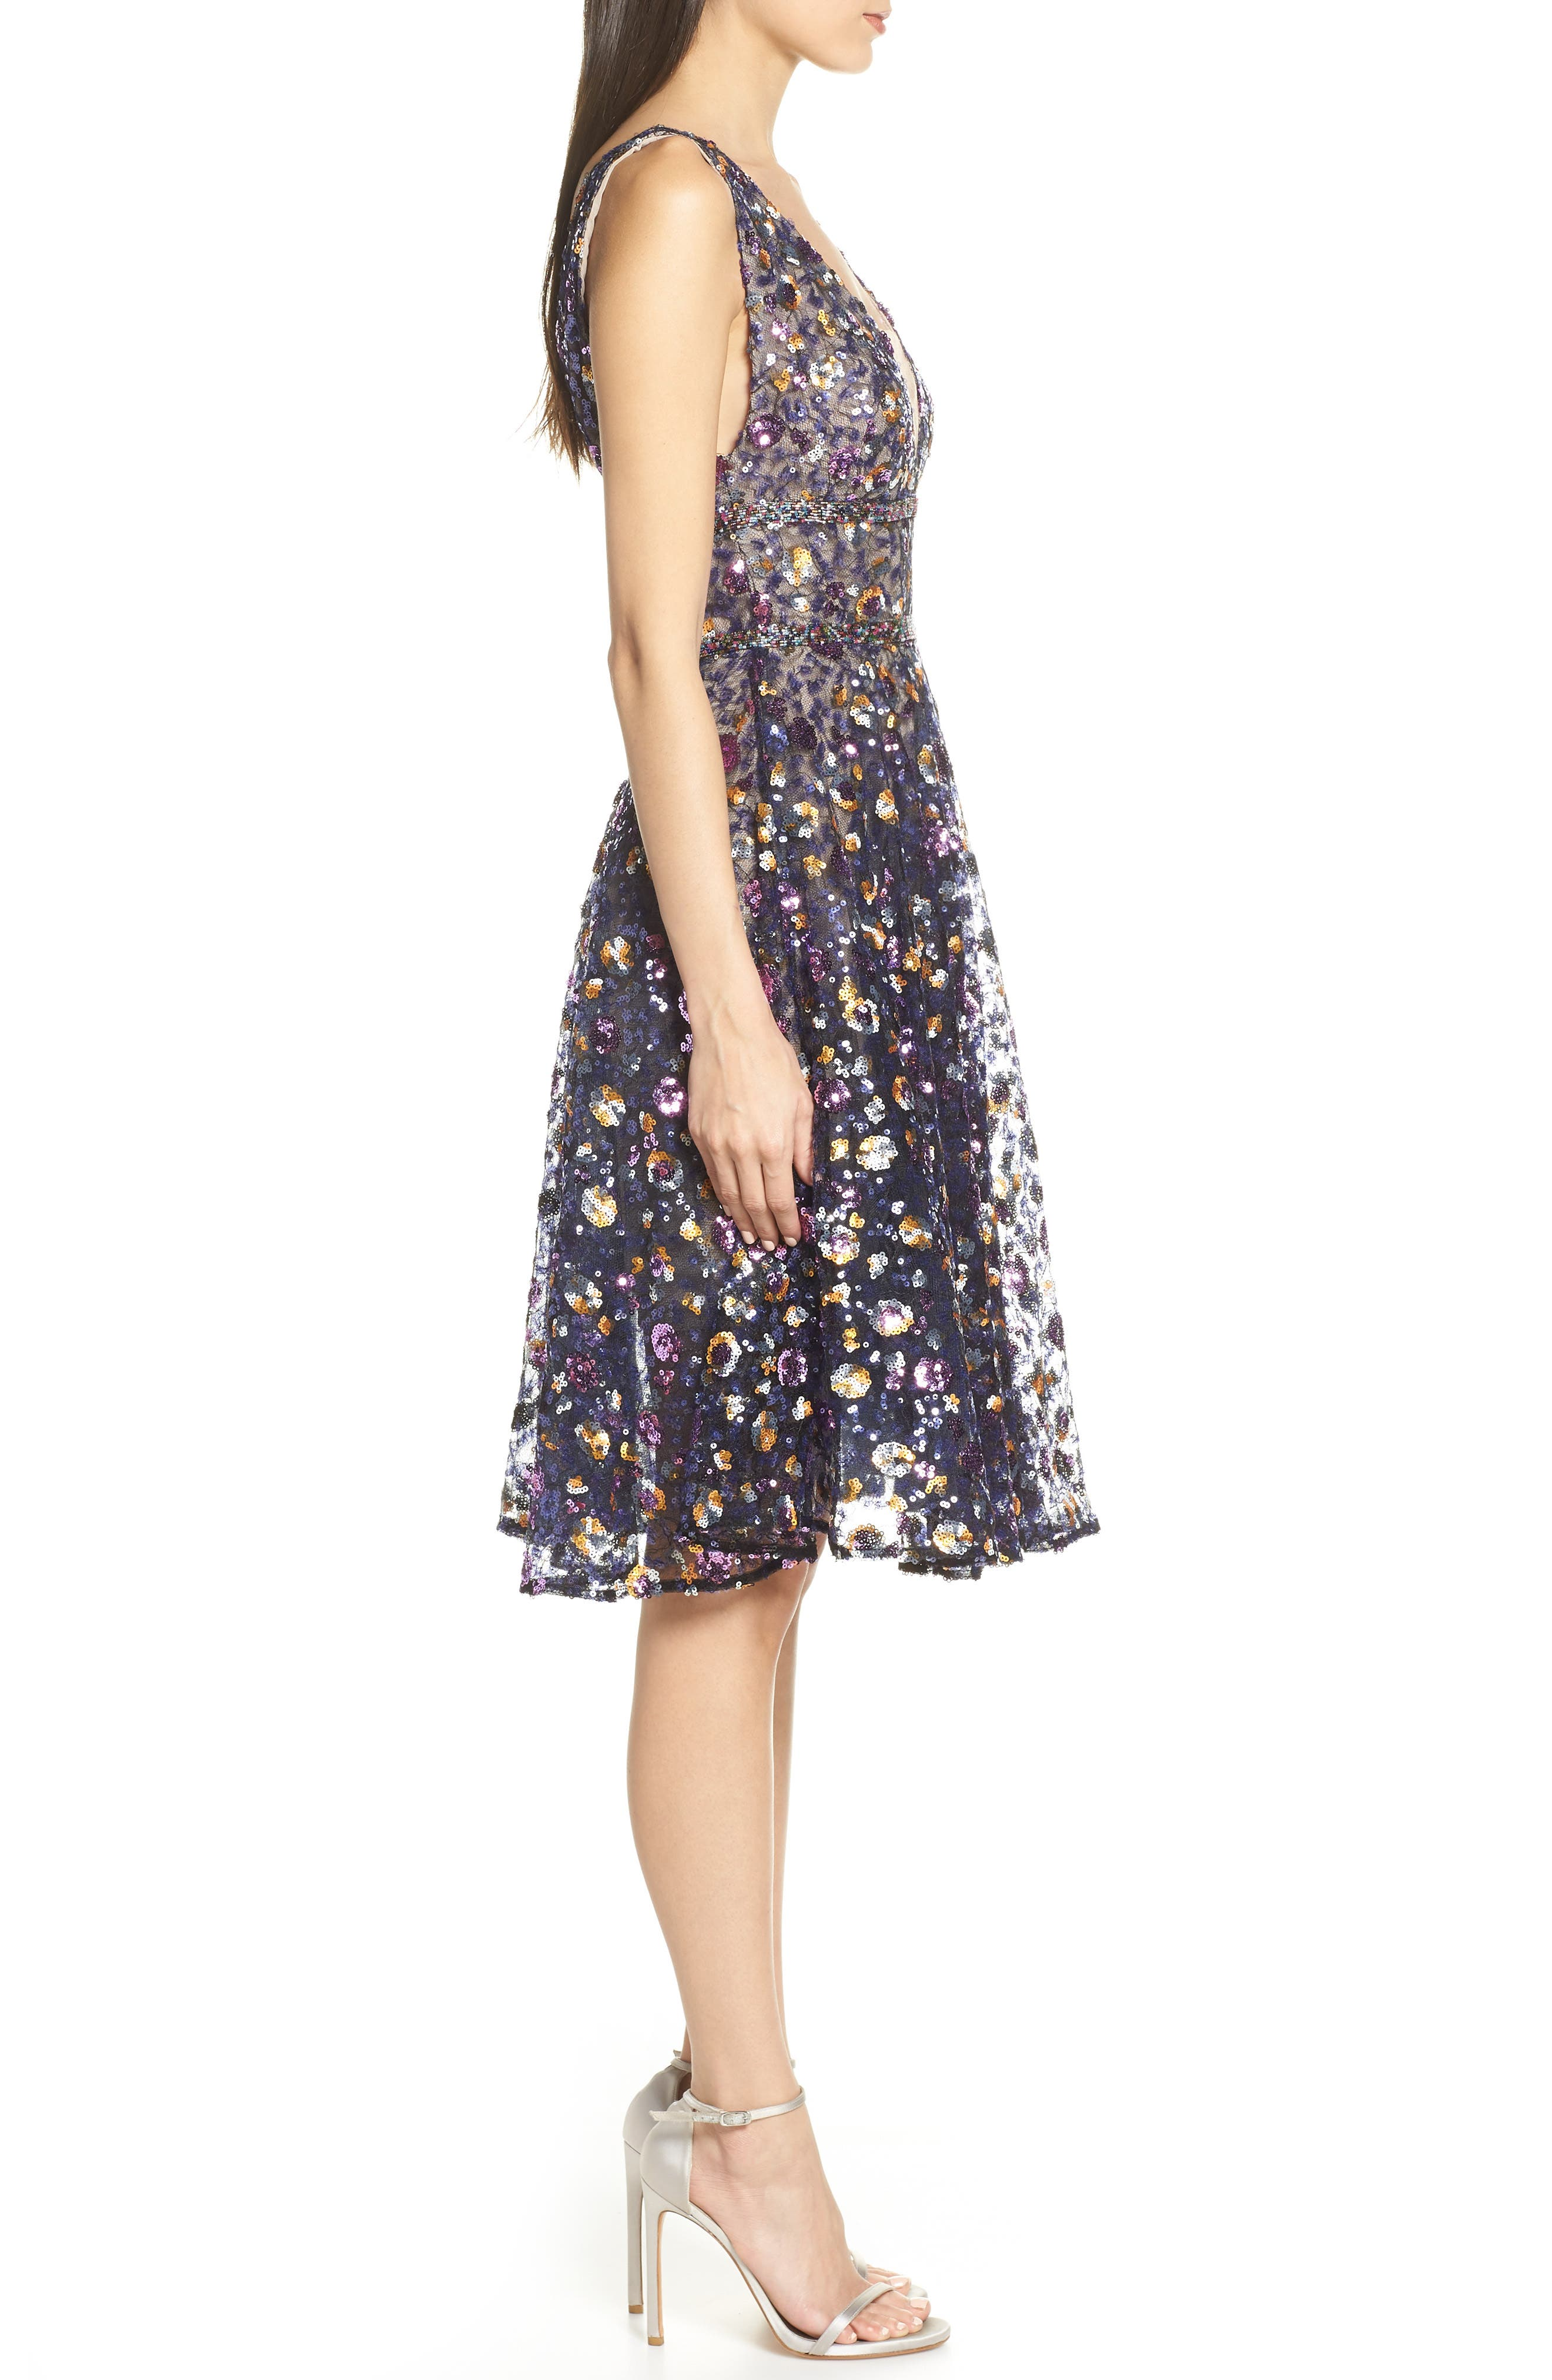 BRONX AND BANCO, Sequin Fit & Flare Dress, Alternate thumbnail 4, color, MULTICOLOR